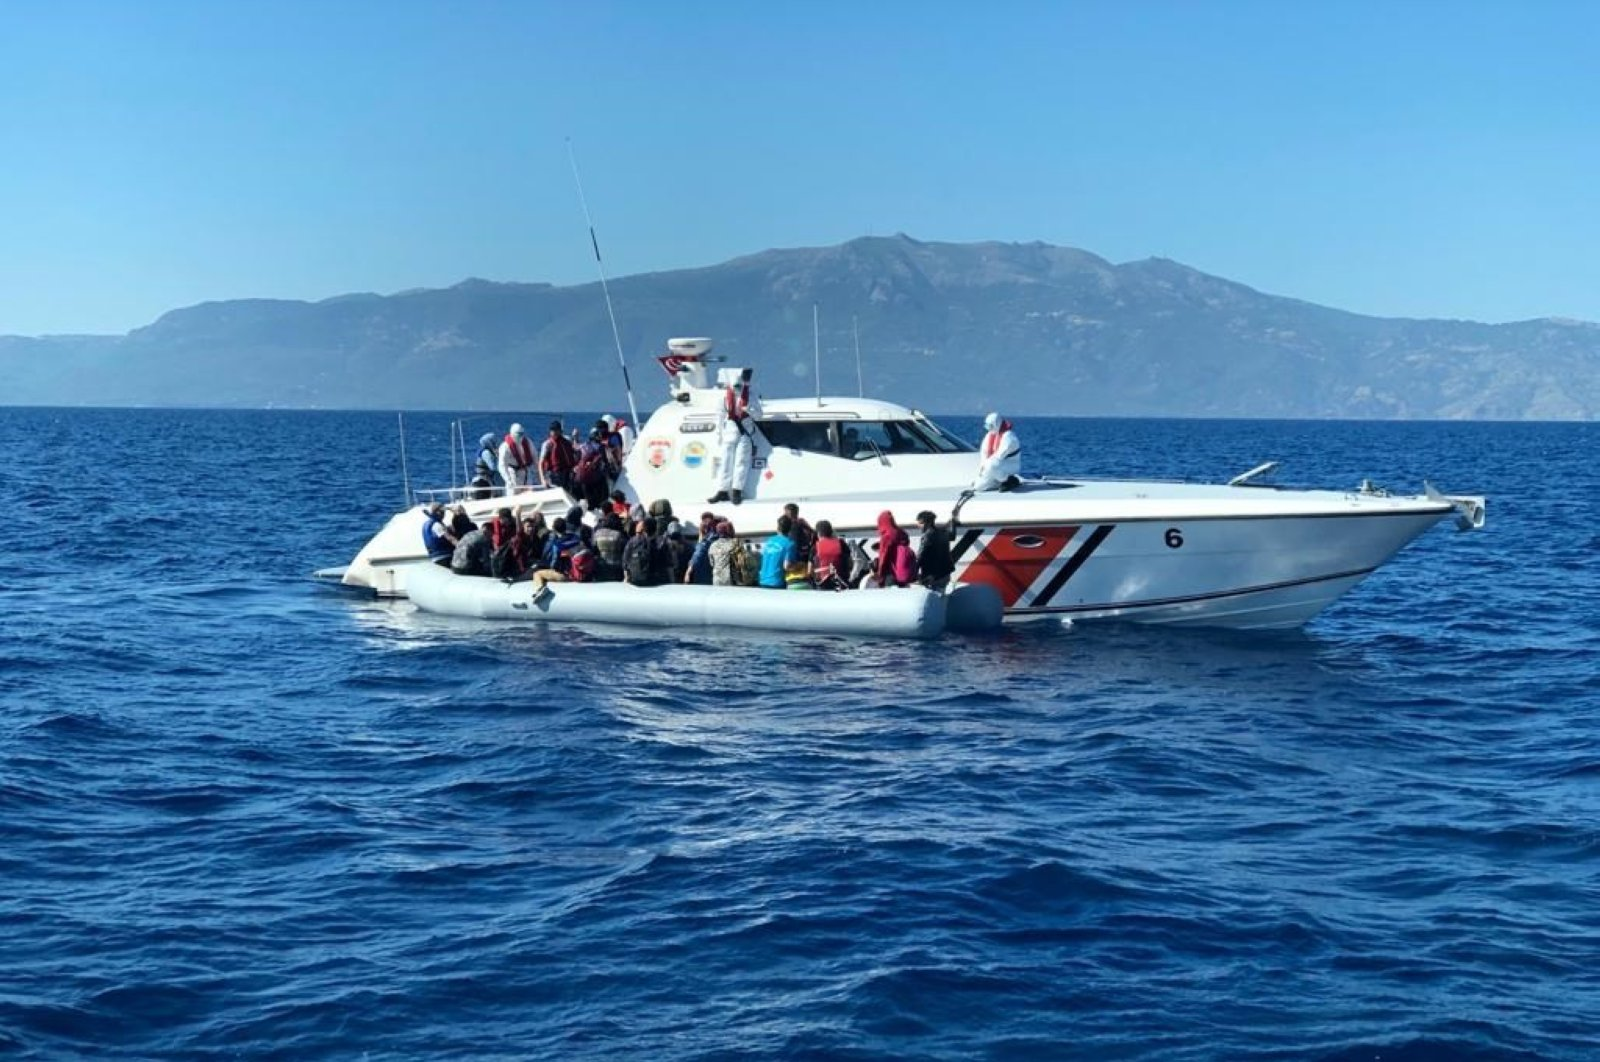 Migrants are being taken to a Turkish Coast Guard boat, Aegean Sea, June 19, 2020. (IHA Photo)